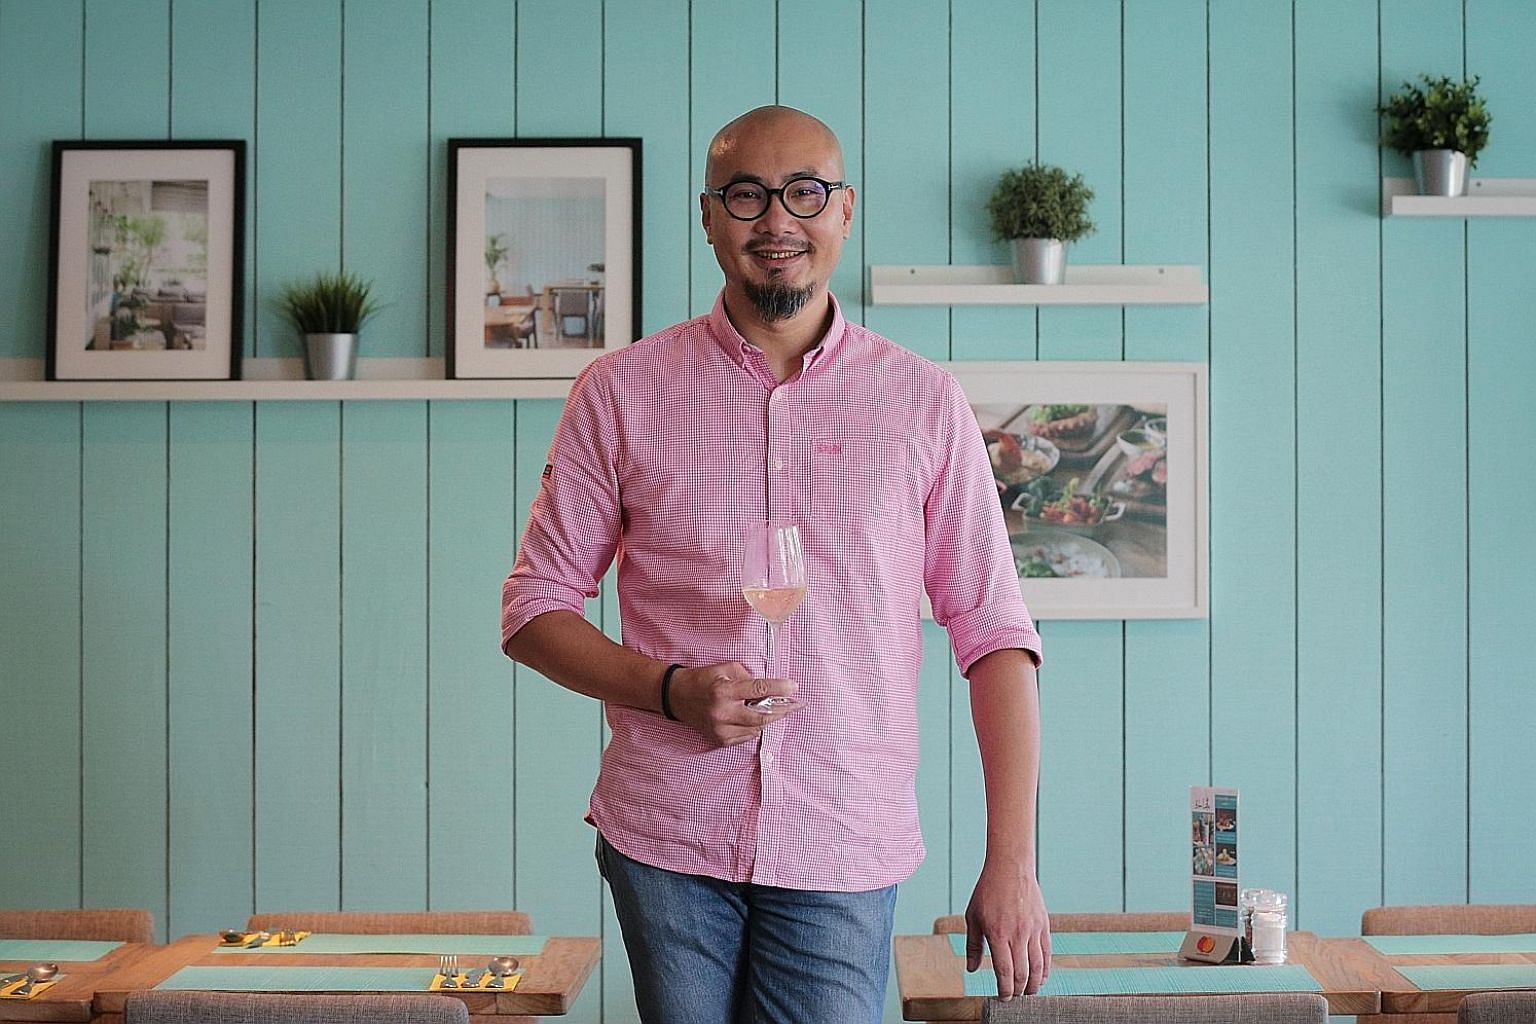 Mr Ricky Ng, founder of Blue Lotus Group - known for its offerings of Asian dishes done with a twist - is planning restaurants in Australian cities as well as a chain of noodle bars located near universities.